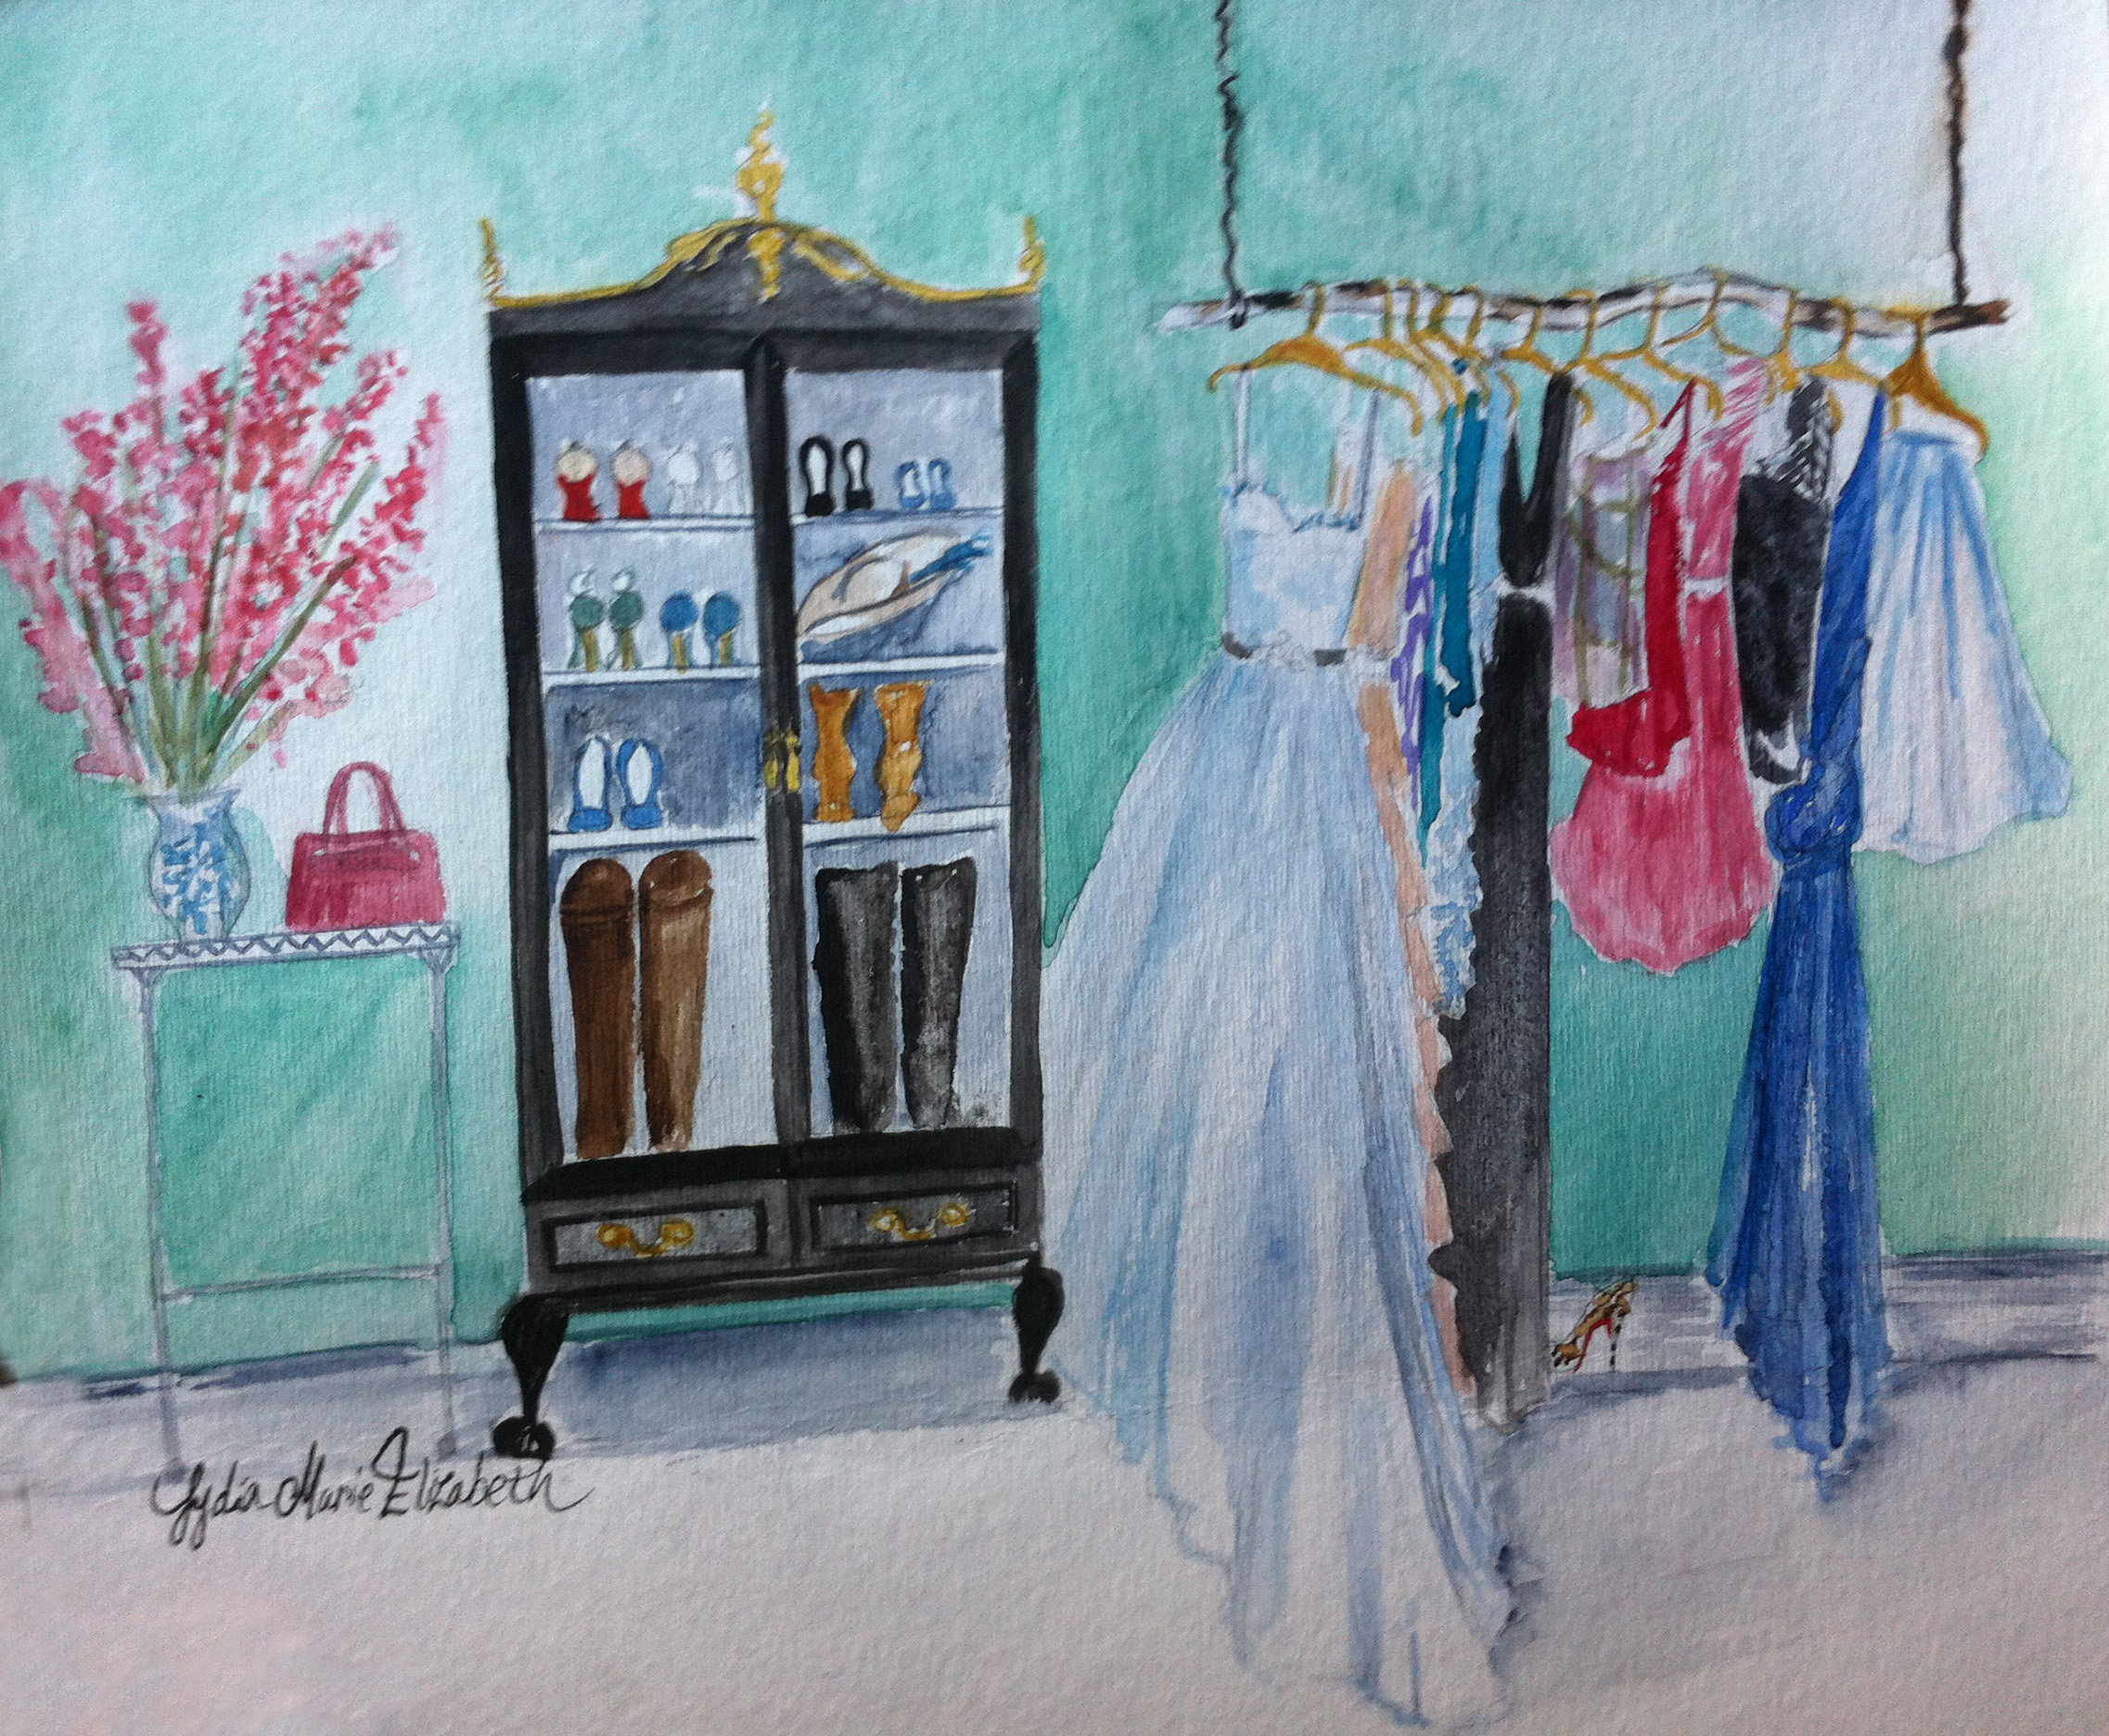 lydia marie elizabeth dream closet greenwich stamford nyc interior design illustration watercolor painting.JPG